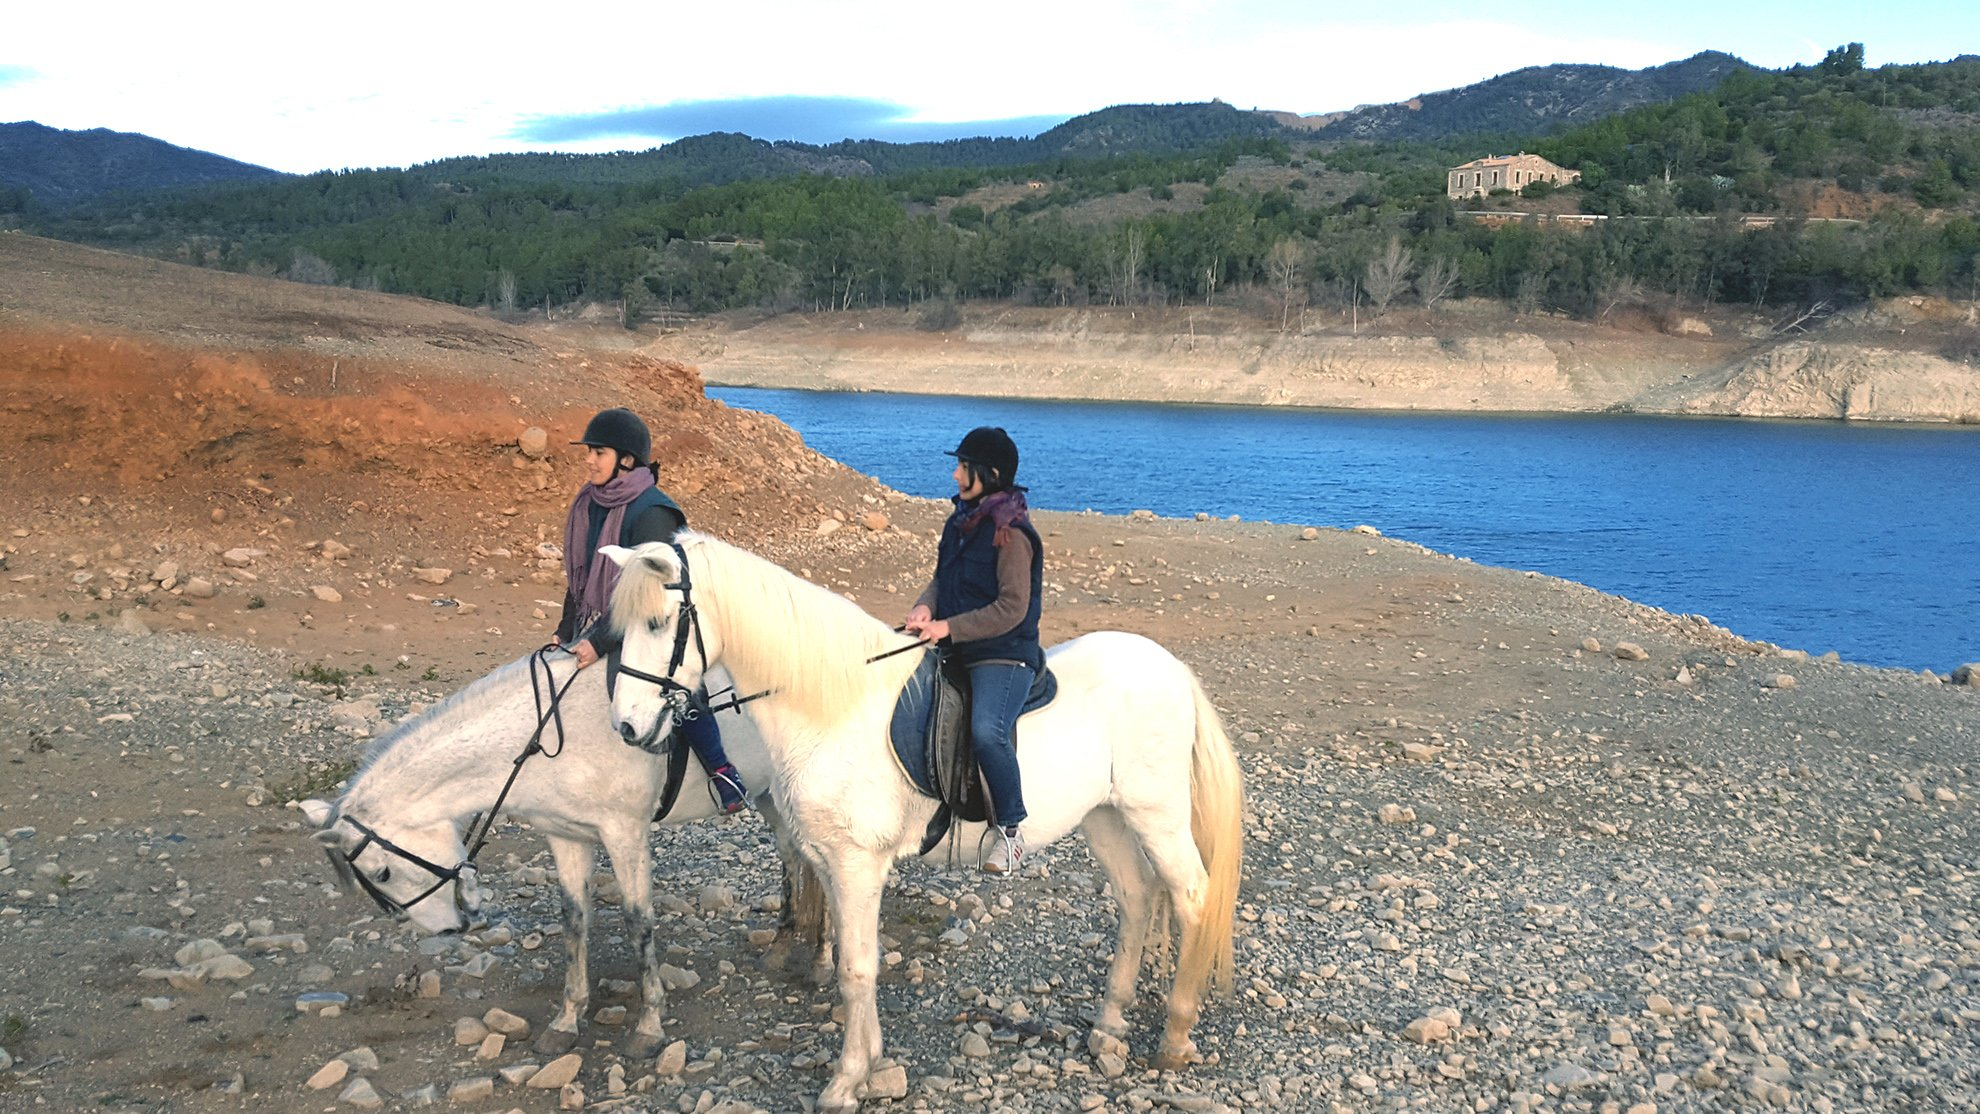 Horseriding excursion to the lake of Riudecanyes, Casa Vella in the background